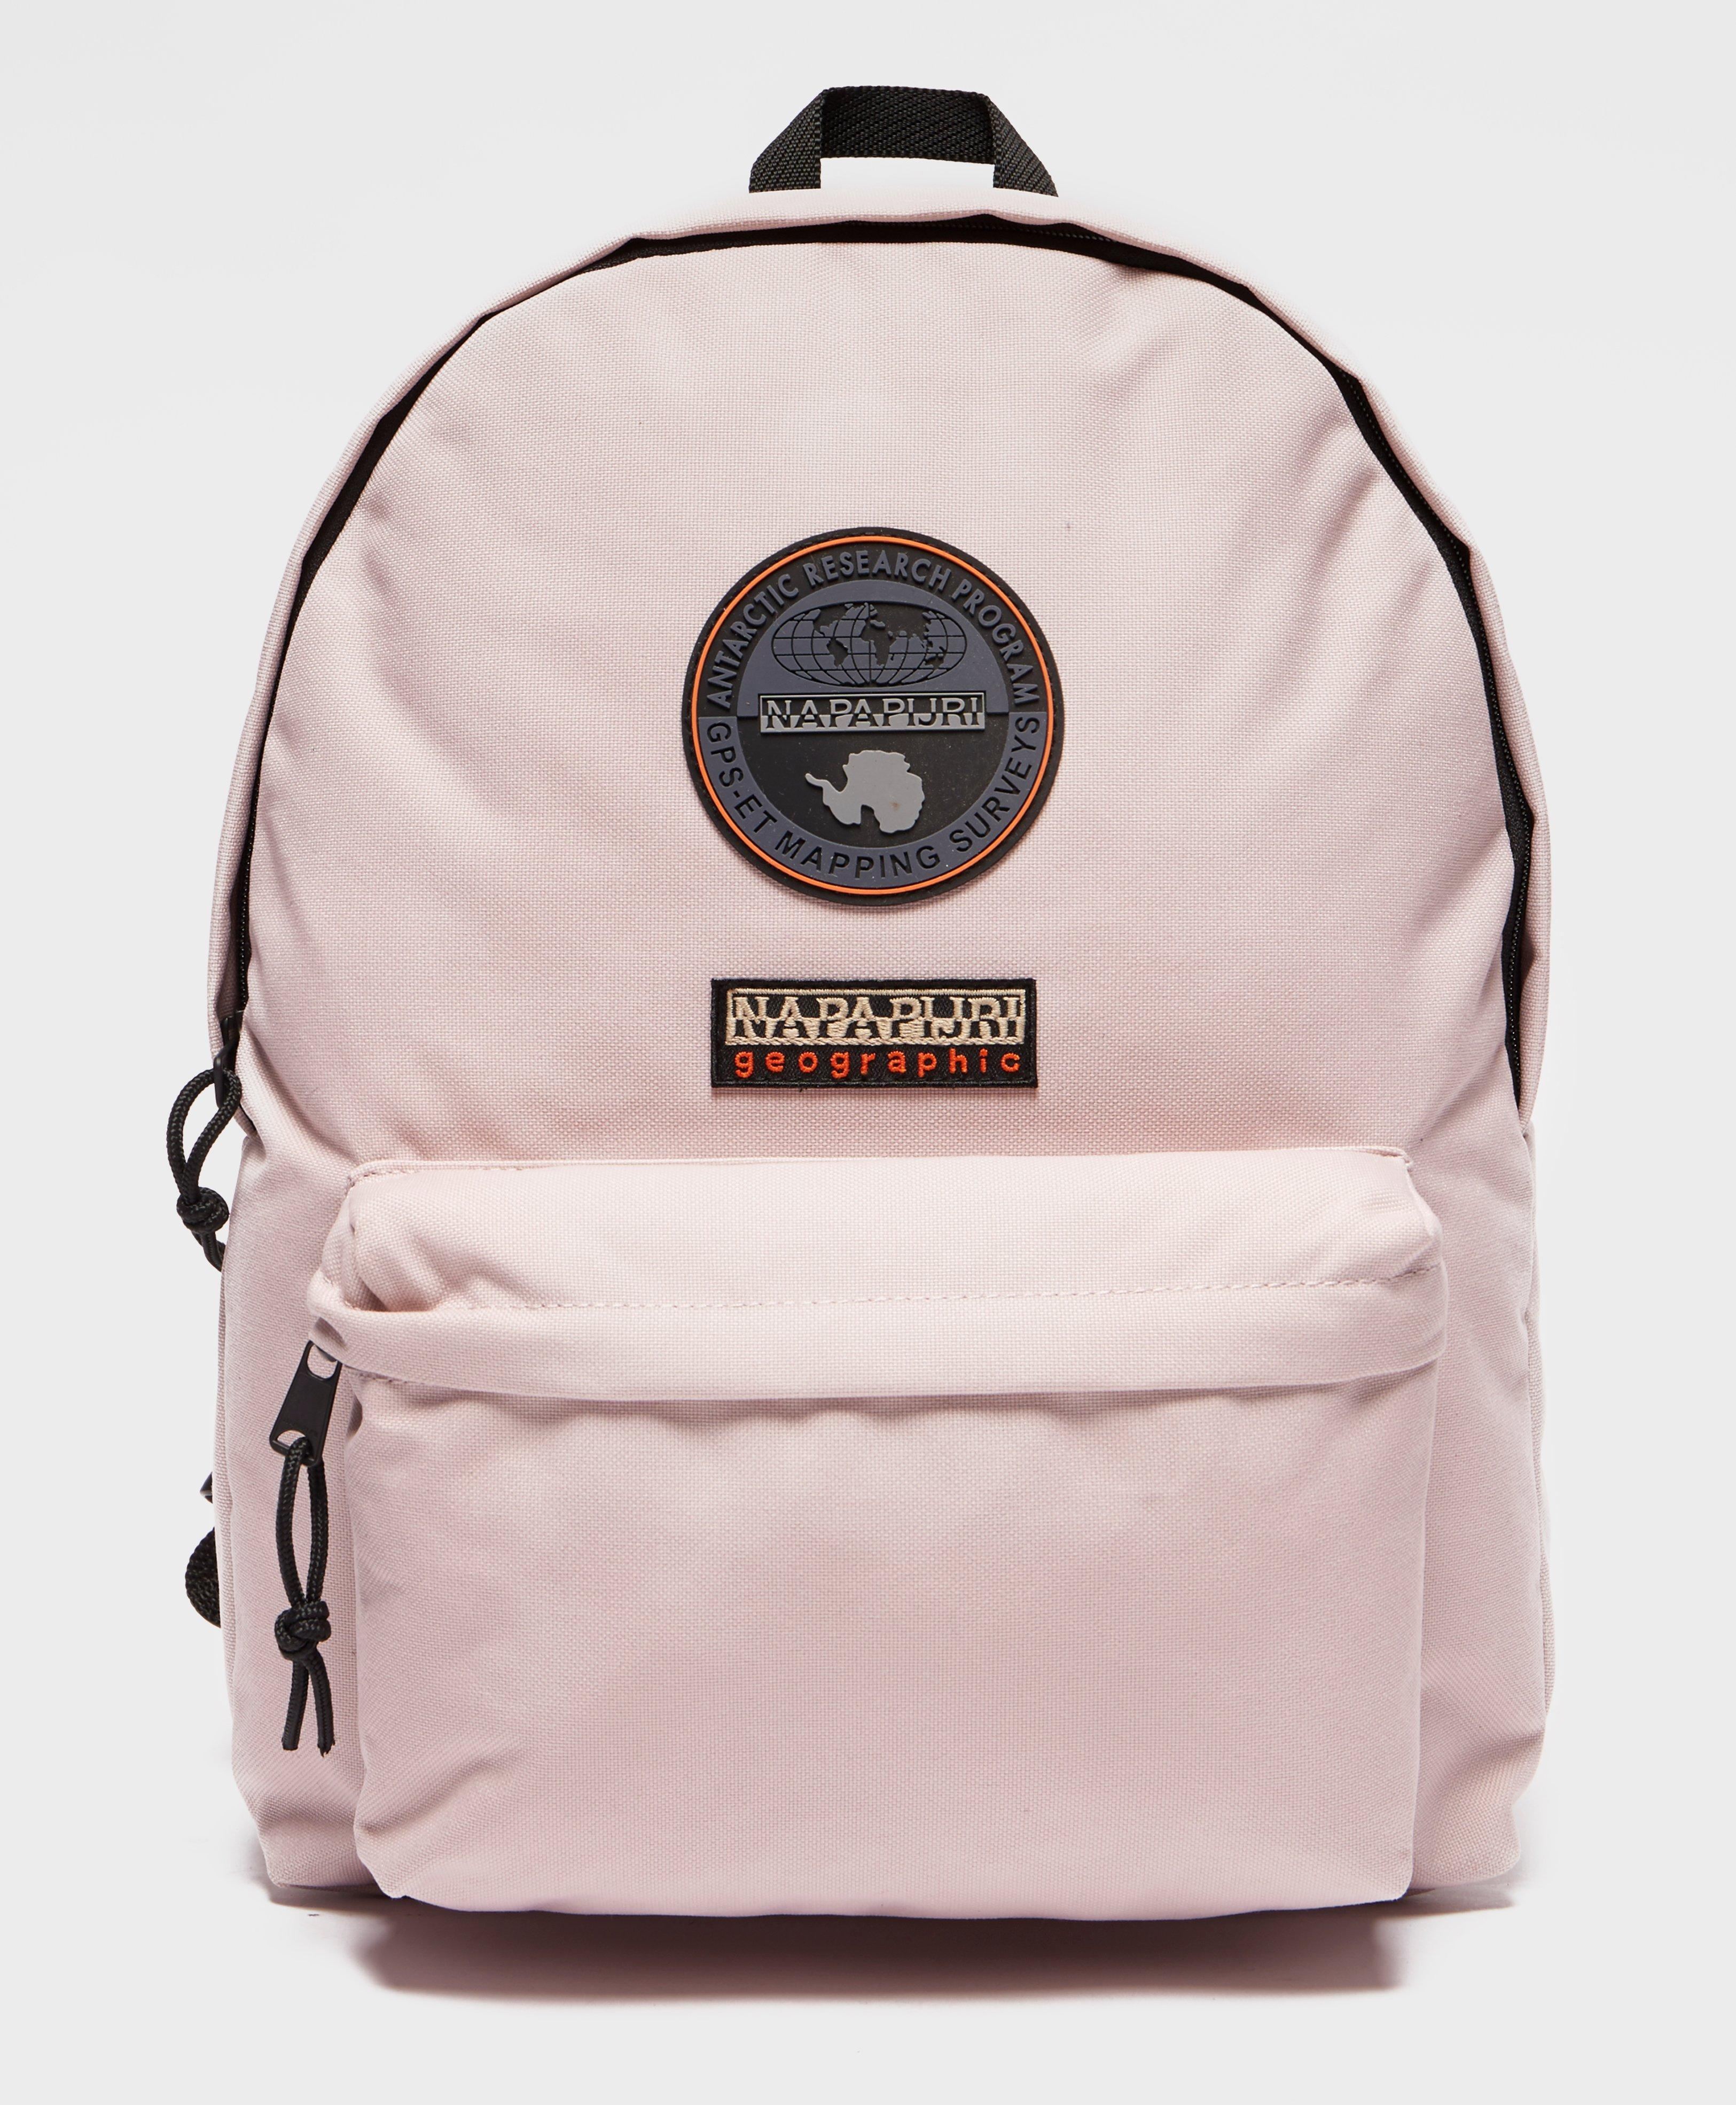 Napapijri Voyage Backpack for Men - Lyst